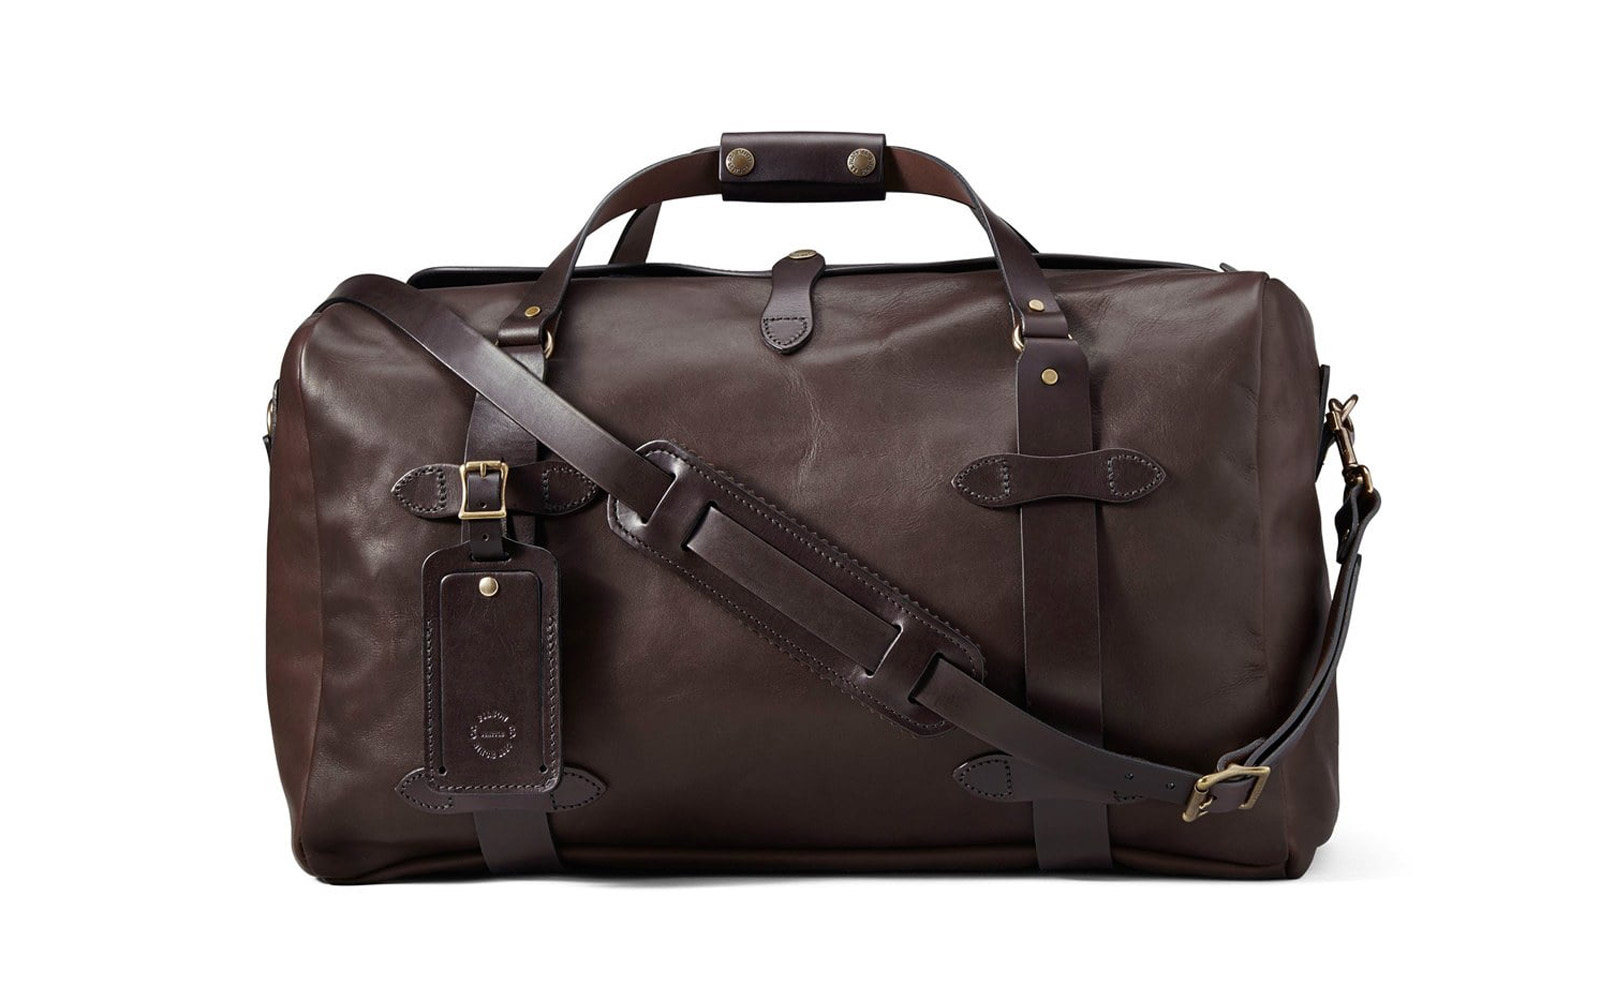 ced5db5b8 The Best Leather Duffel Bags | Travel + Leisure